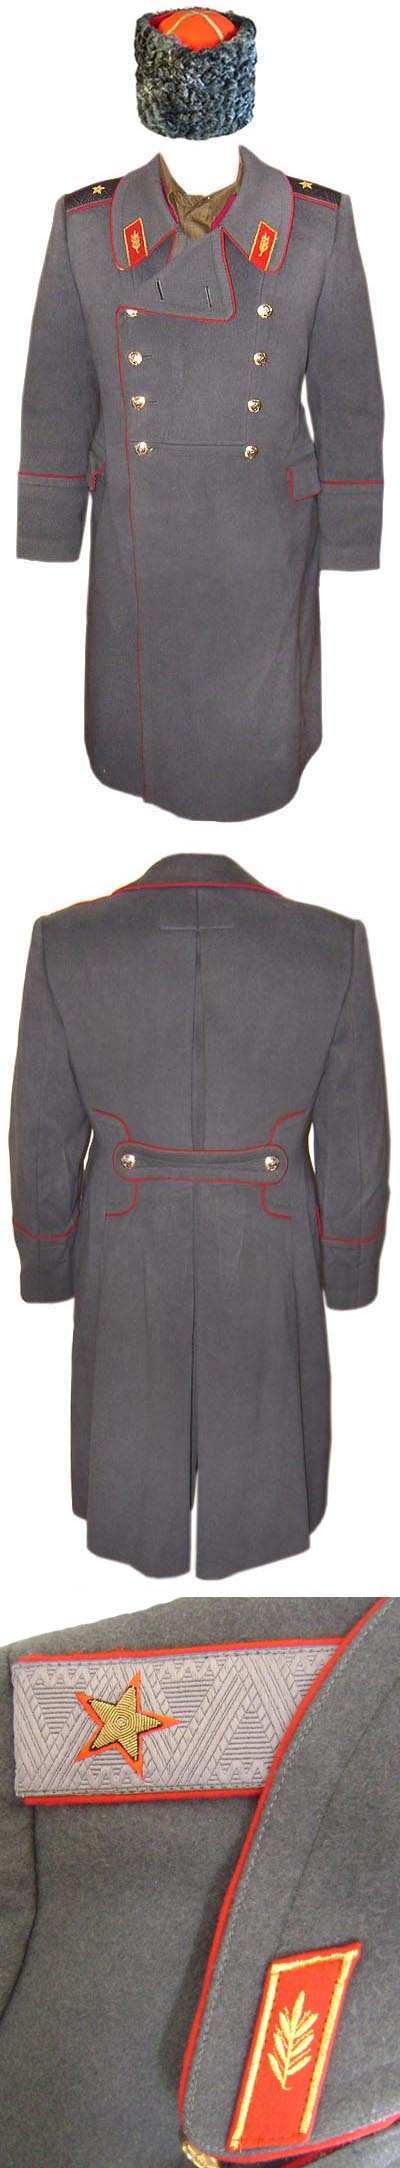 USSR Army parade GENERAL Long winter Great Coat